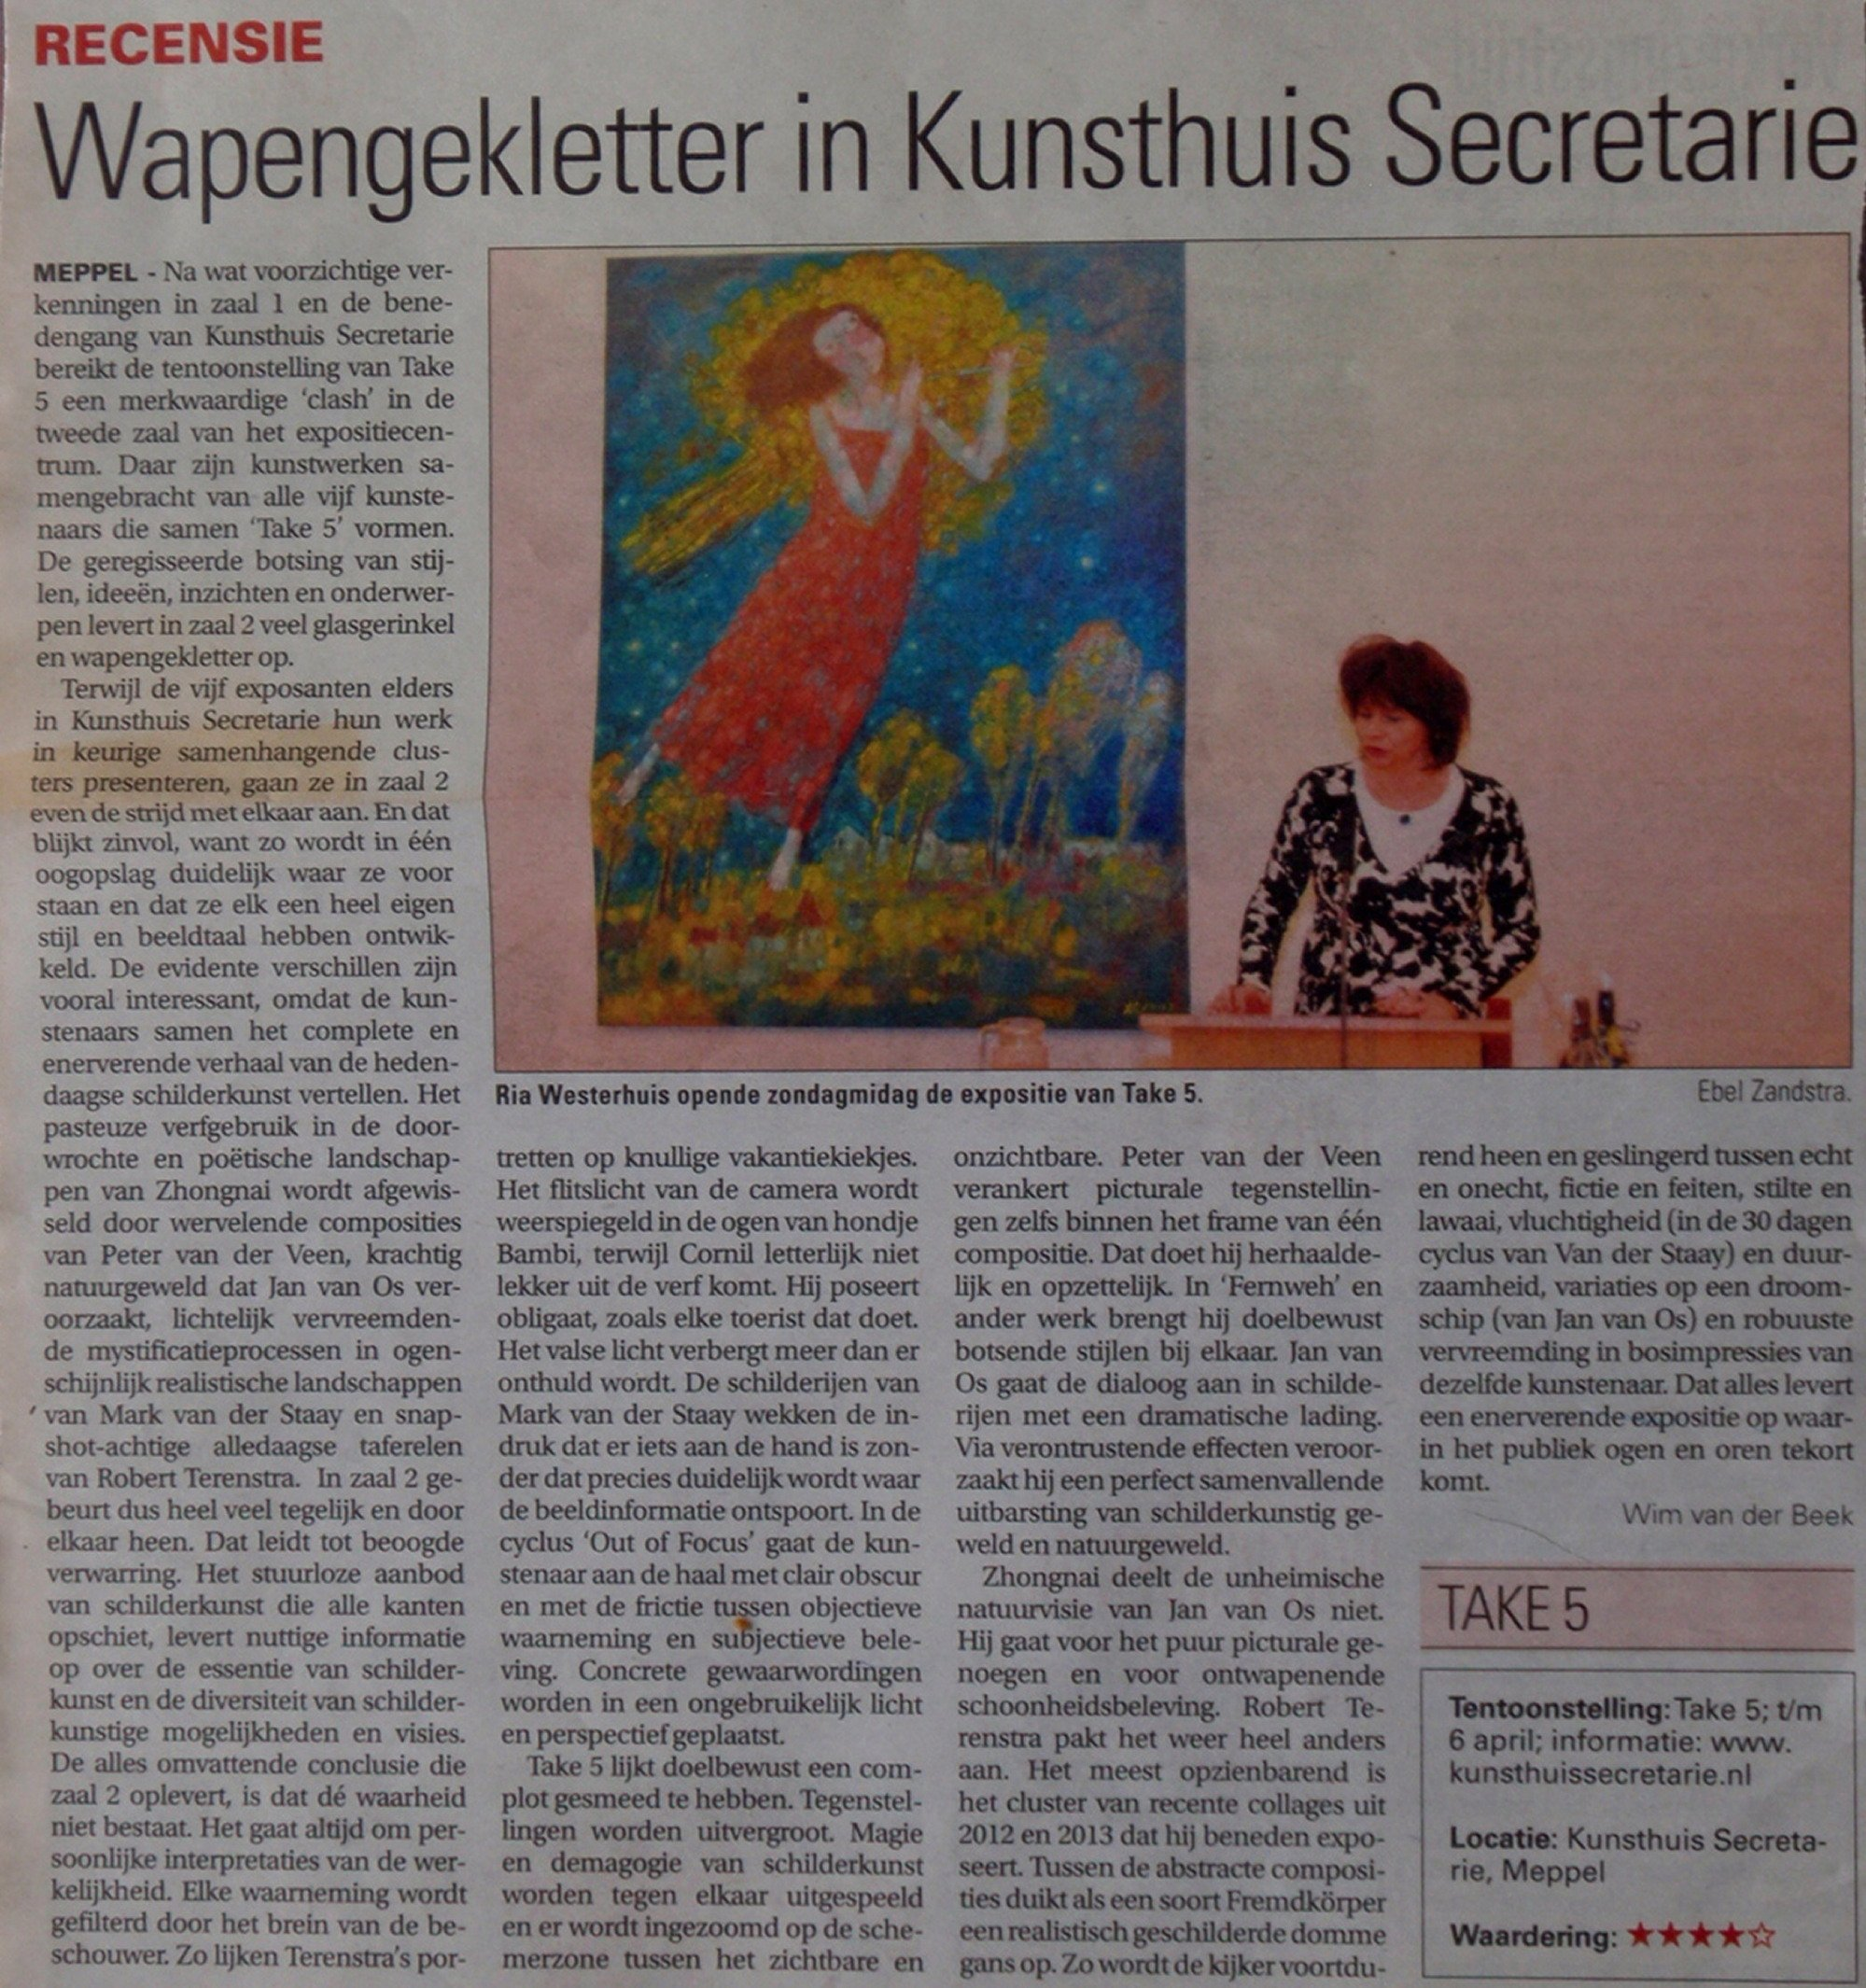 2014. Take 5 expo Kunsthuis De Secretarie.